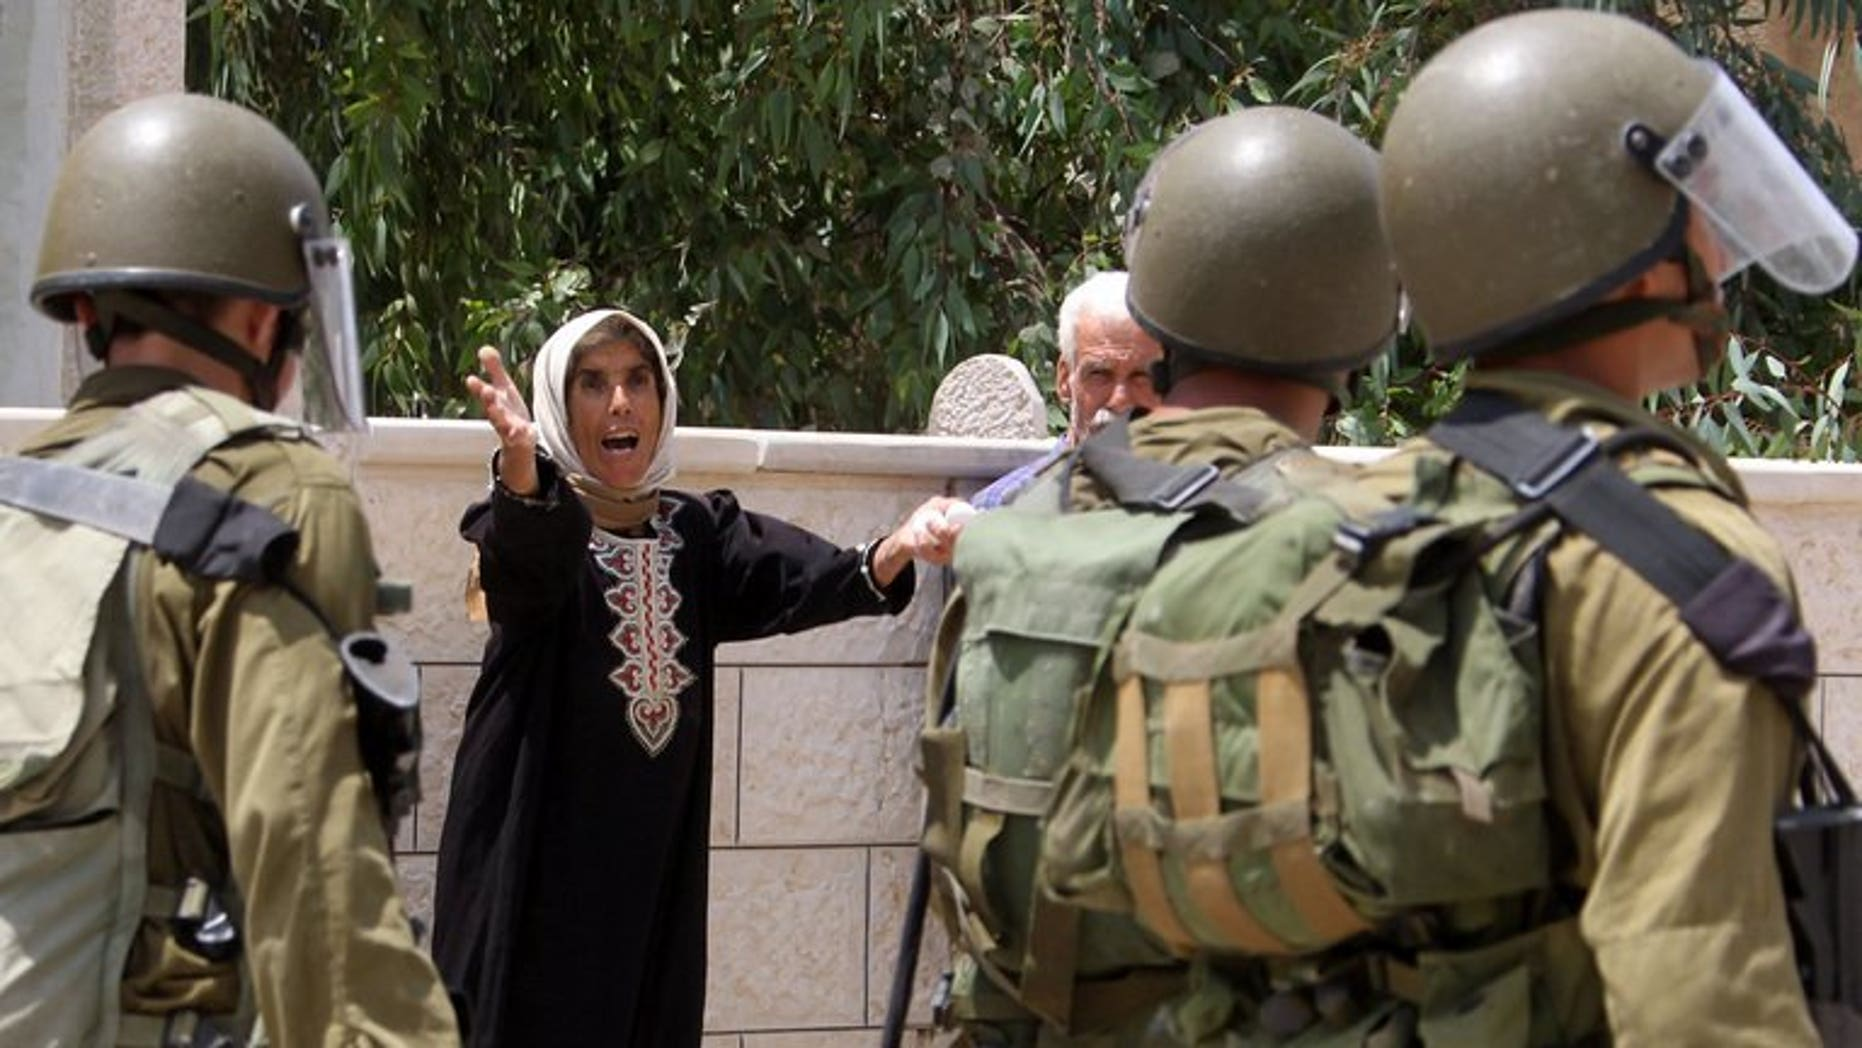 A Palestinian woman yells at Israeli soldiers during clashes following a protest in the village of Kfar Qaddum, near Nablus in the occupied West Bank on July 19, 2013. Israeli troops shot dead a Palestinian and wounded two others during an operation early Tuesday to arrest a Palestinian militant in the West Bank city of Jenin, the army said.